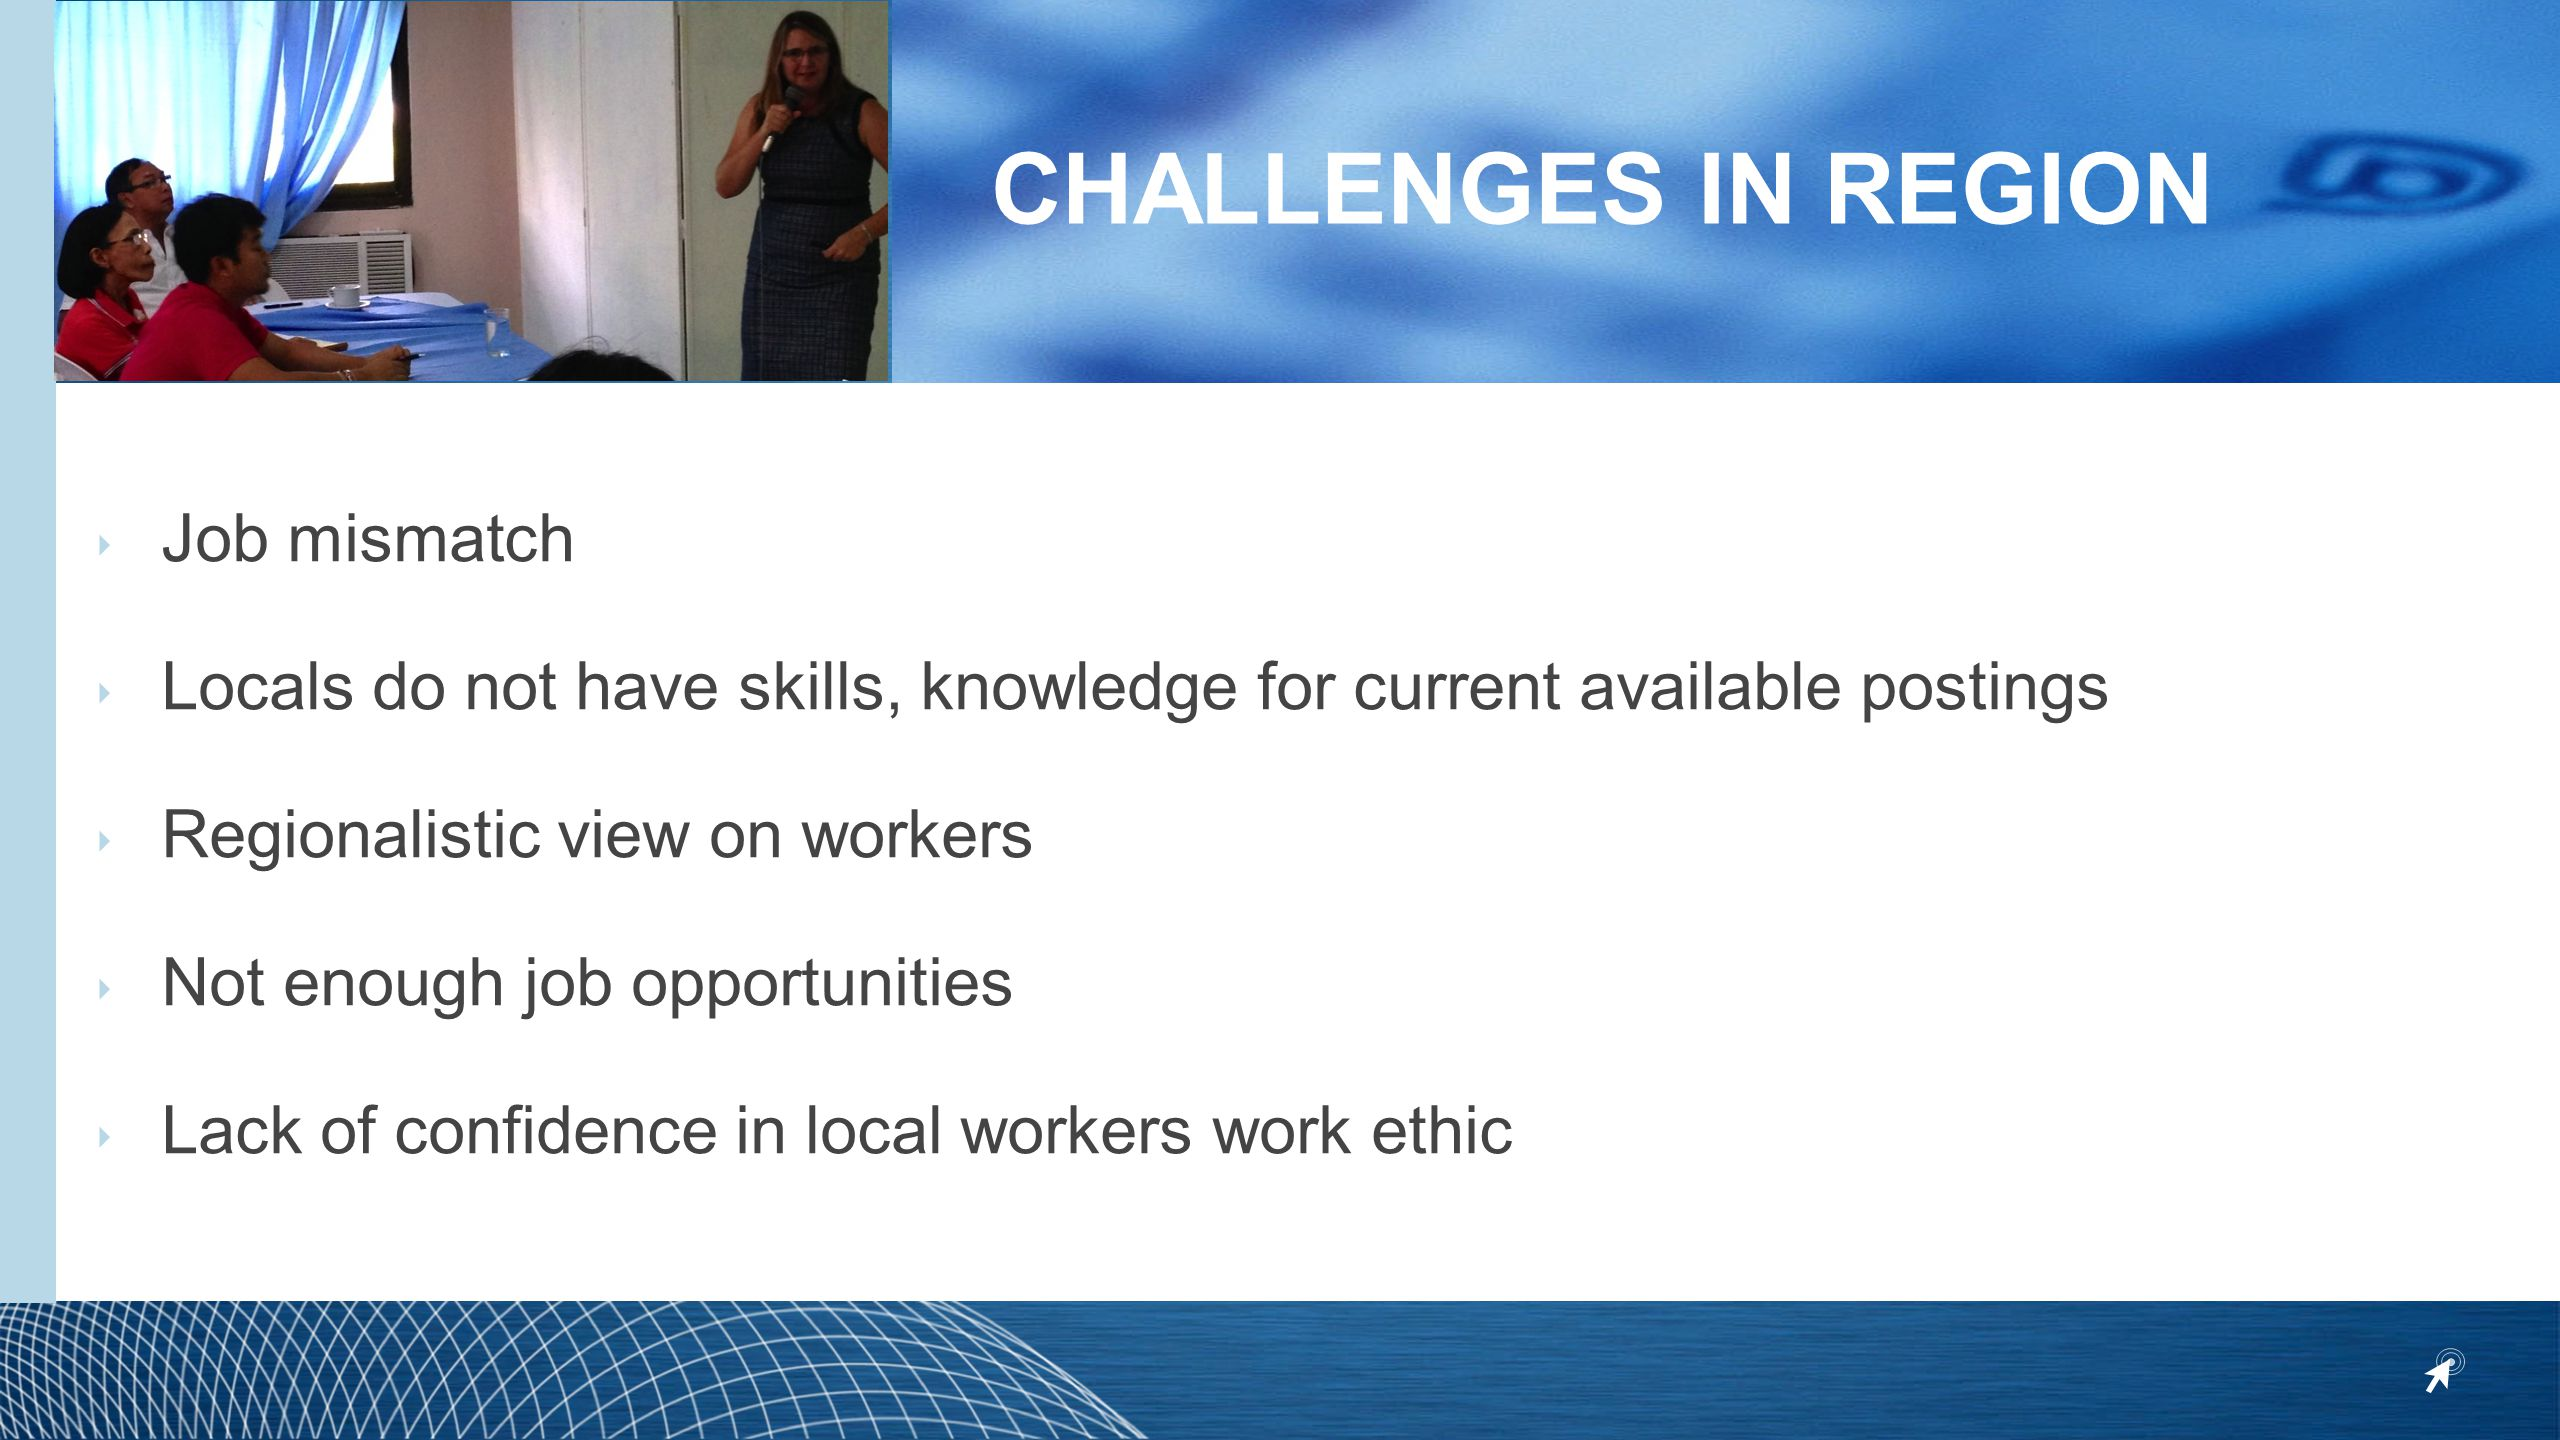 CHALLENGES IN REGION ‣ Job mismatch ‣ Locals do not have skills, knowledge for current available postings ‣ Regionalistic view on workers ‣ Not enough